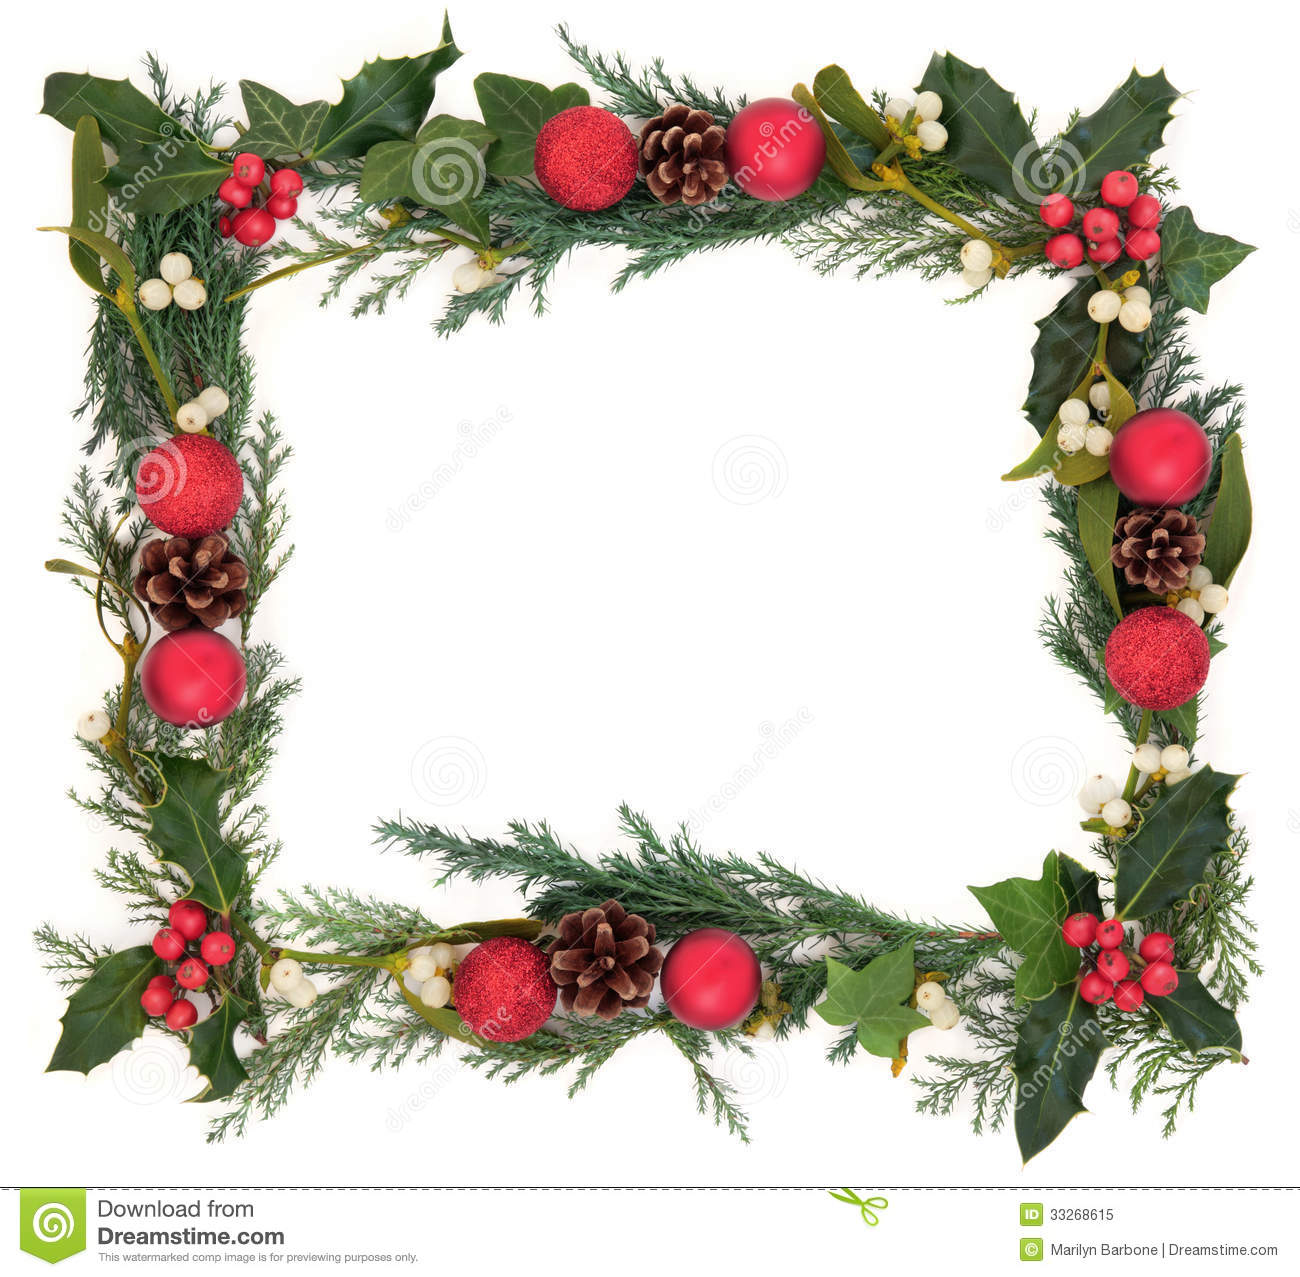 Christmas greens clipart suggest